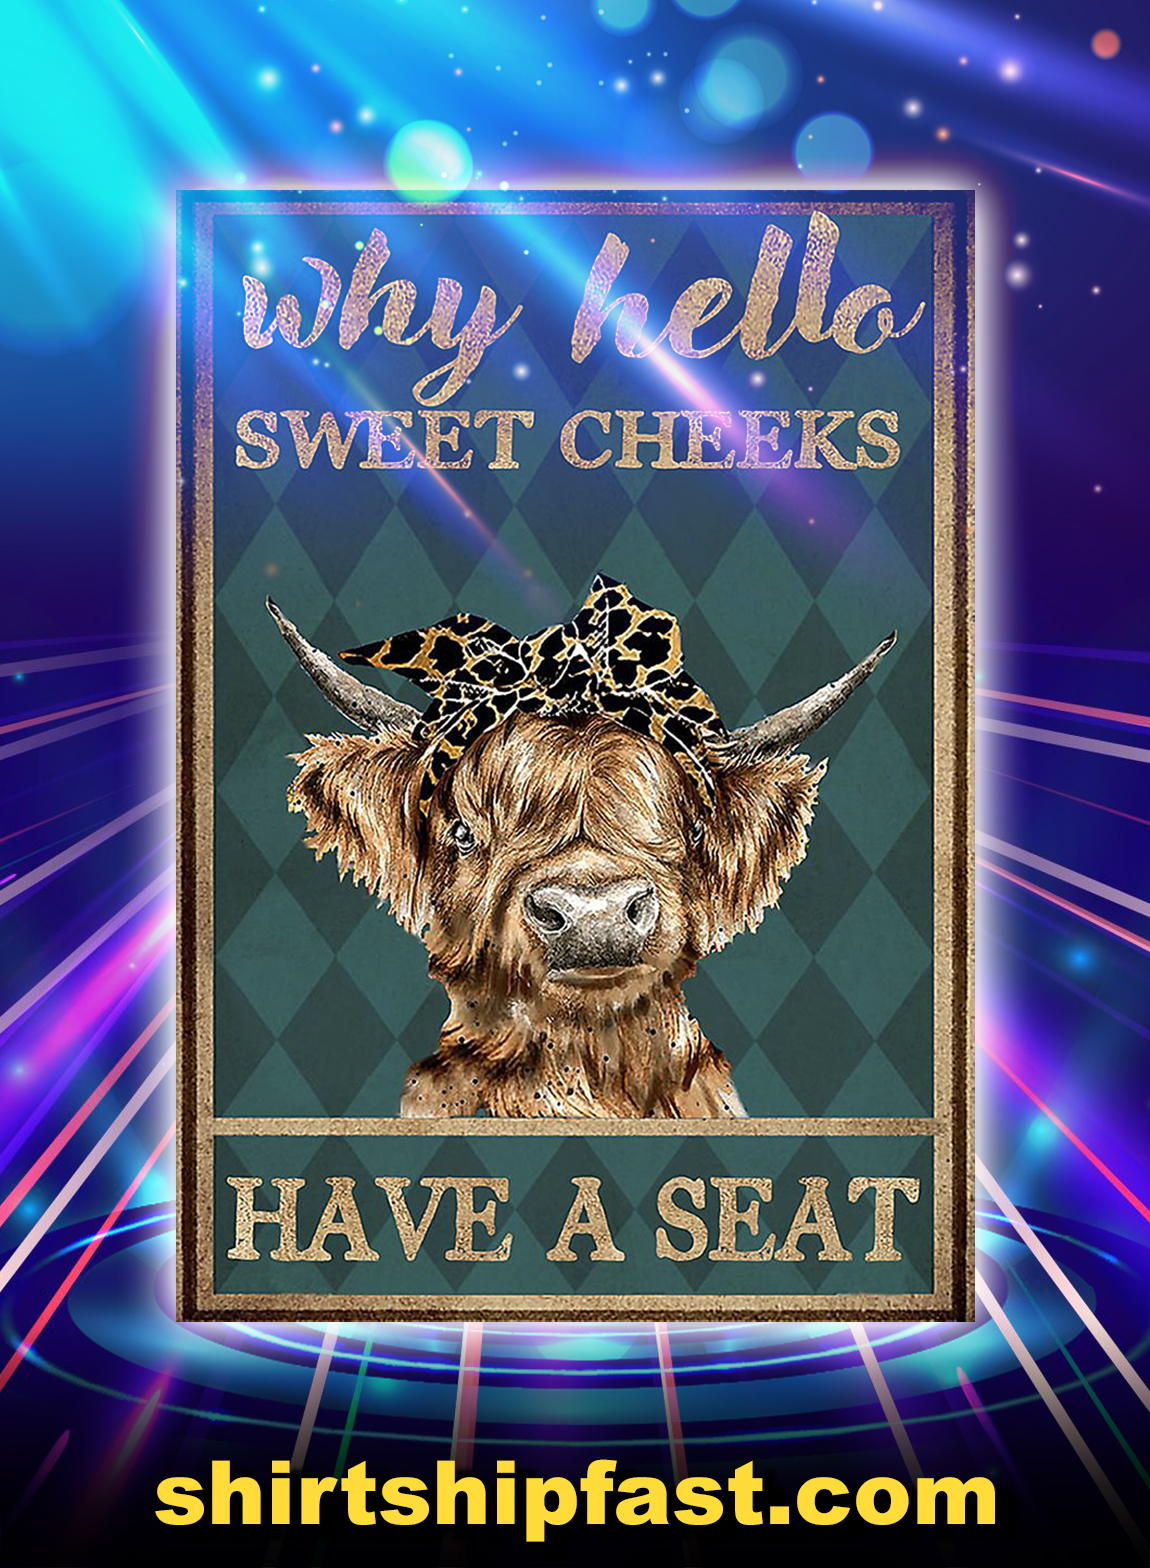 Cow highland cattle why hello sweet cheeks have a seat poster - A2